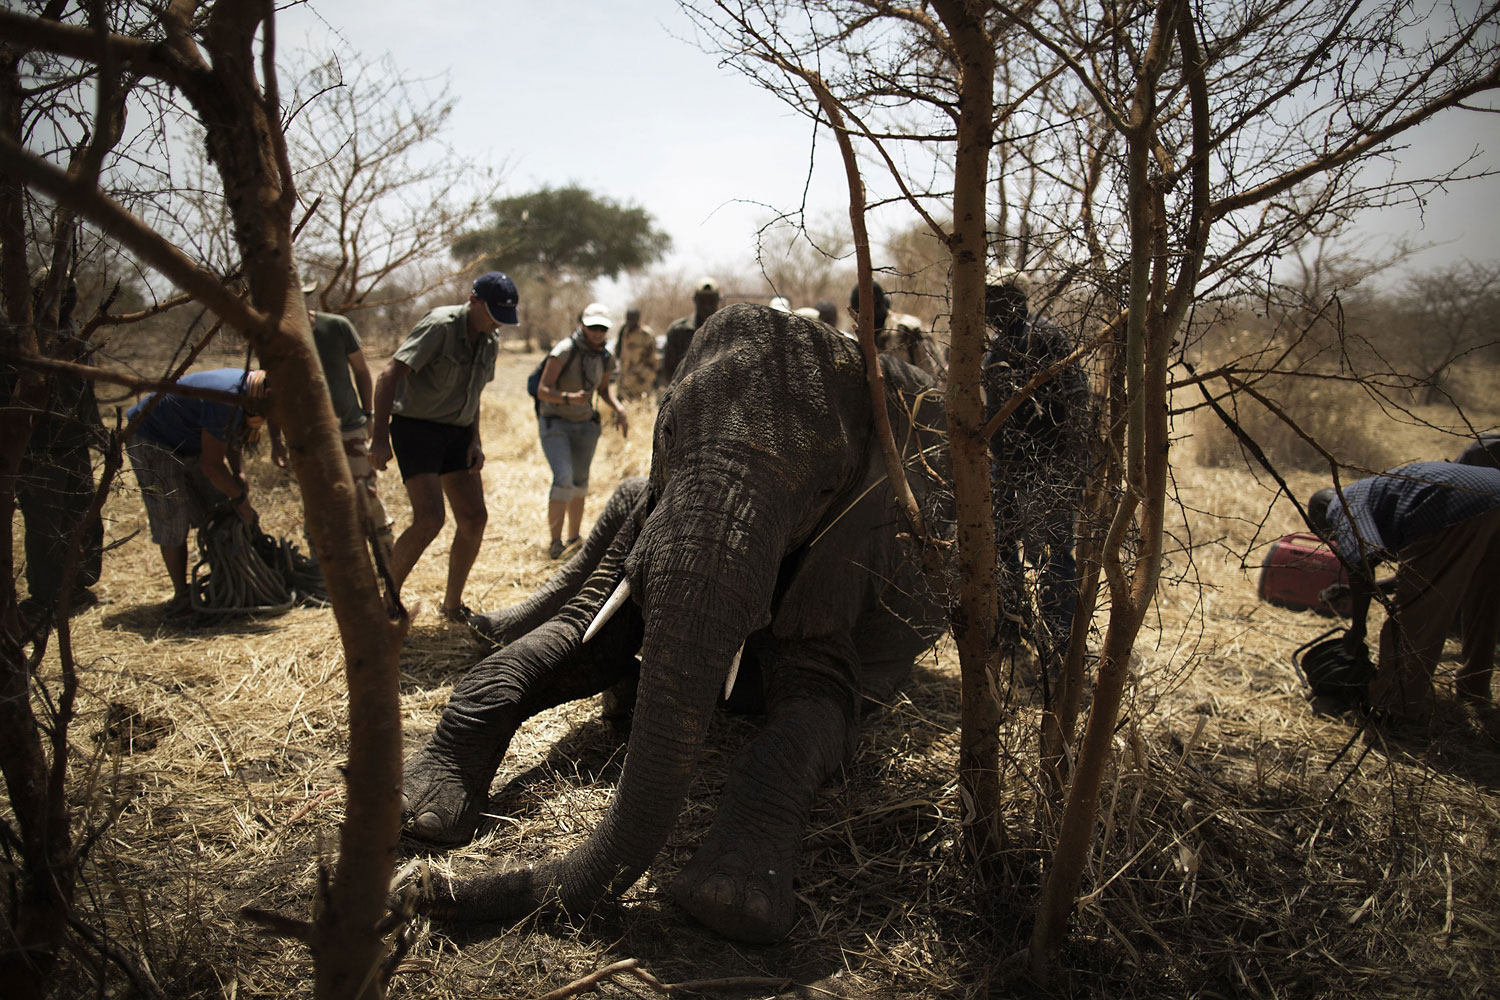 African Parks staff scramble to help an elephant who fell on a dangerous position after being darted at the Zakouma National Park on Feb. 23, 2014 during a collaring operation aimed at preserving elephants in the park.